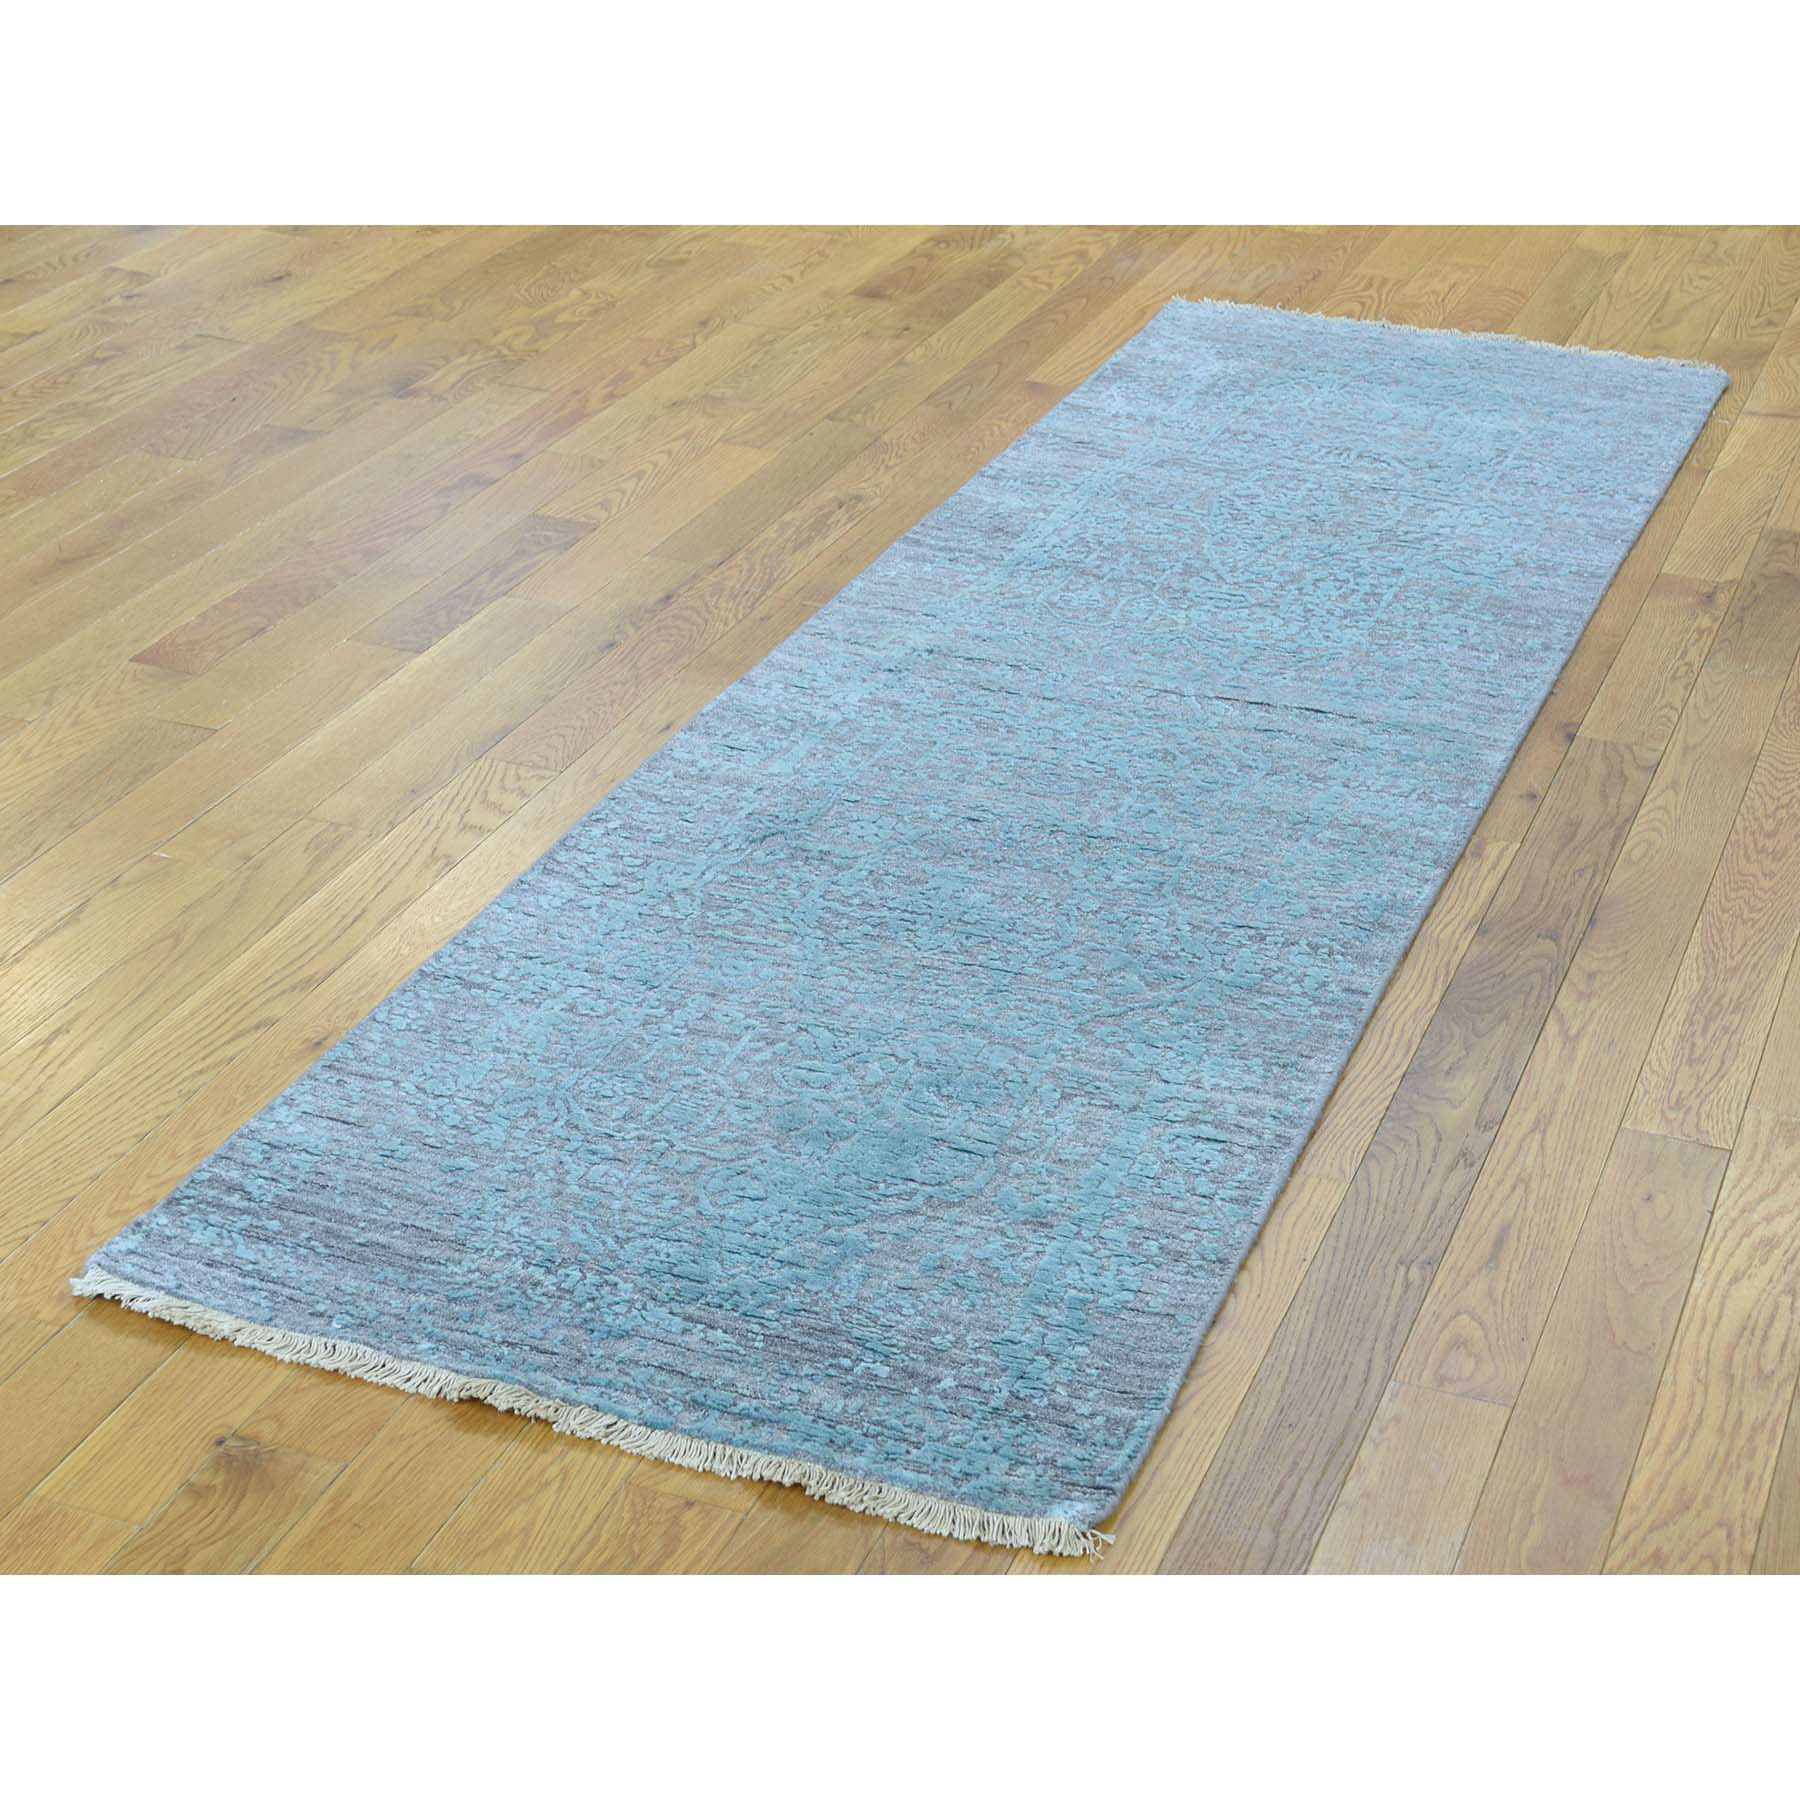 "2'7""x9'9"" Broken Persian Design Hand-Knotted Wool and Silk Runner Rug"